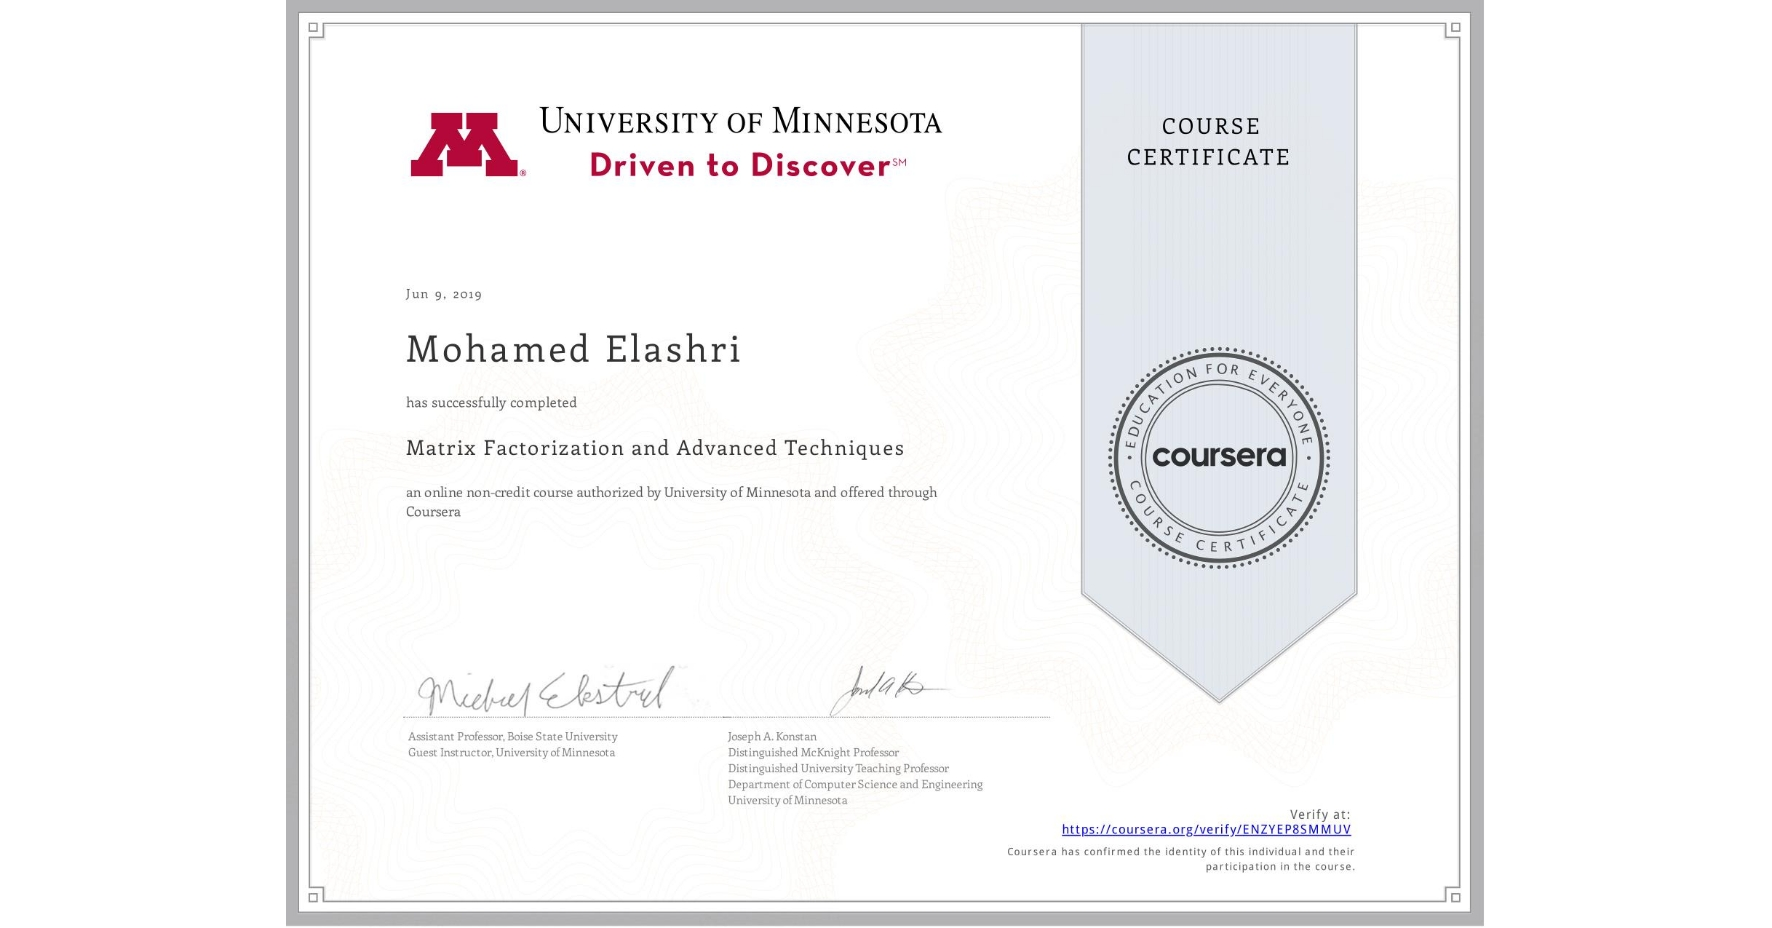 View certificate for Mohamed Elashri, Matrix Factorization and Advanced Techniques, an online non-credit course authorized by University of Minnesota and offered through Coursera